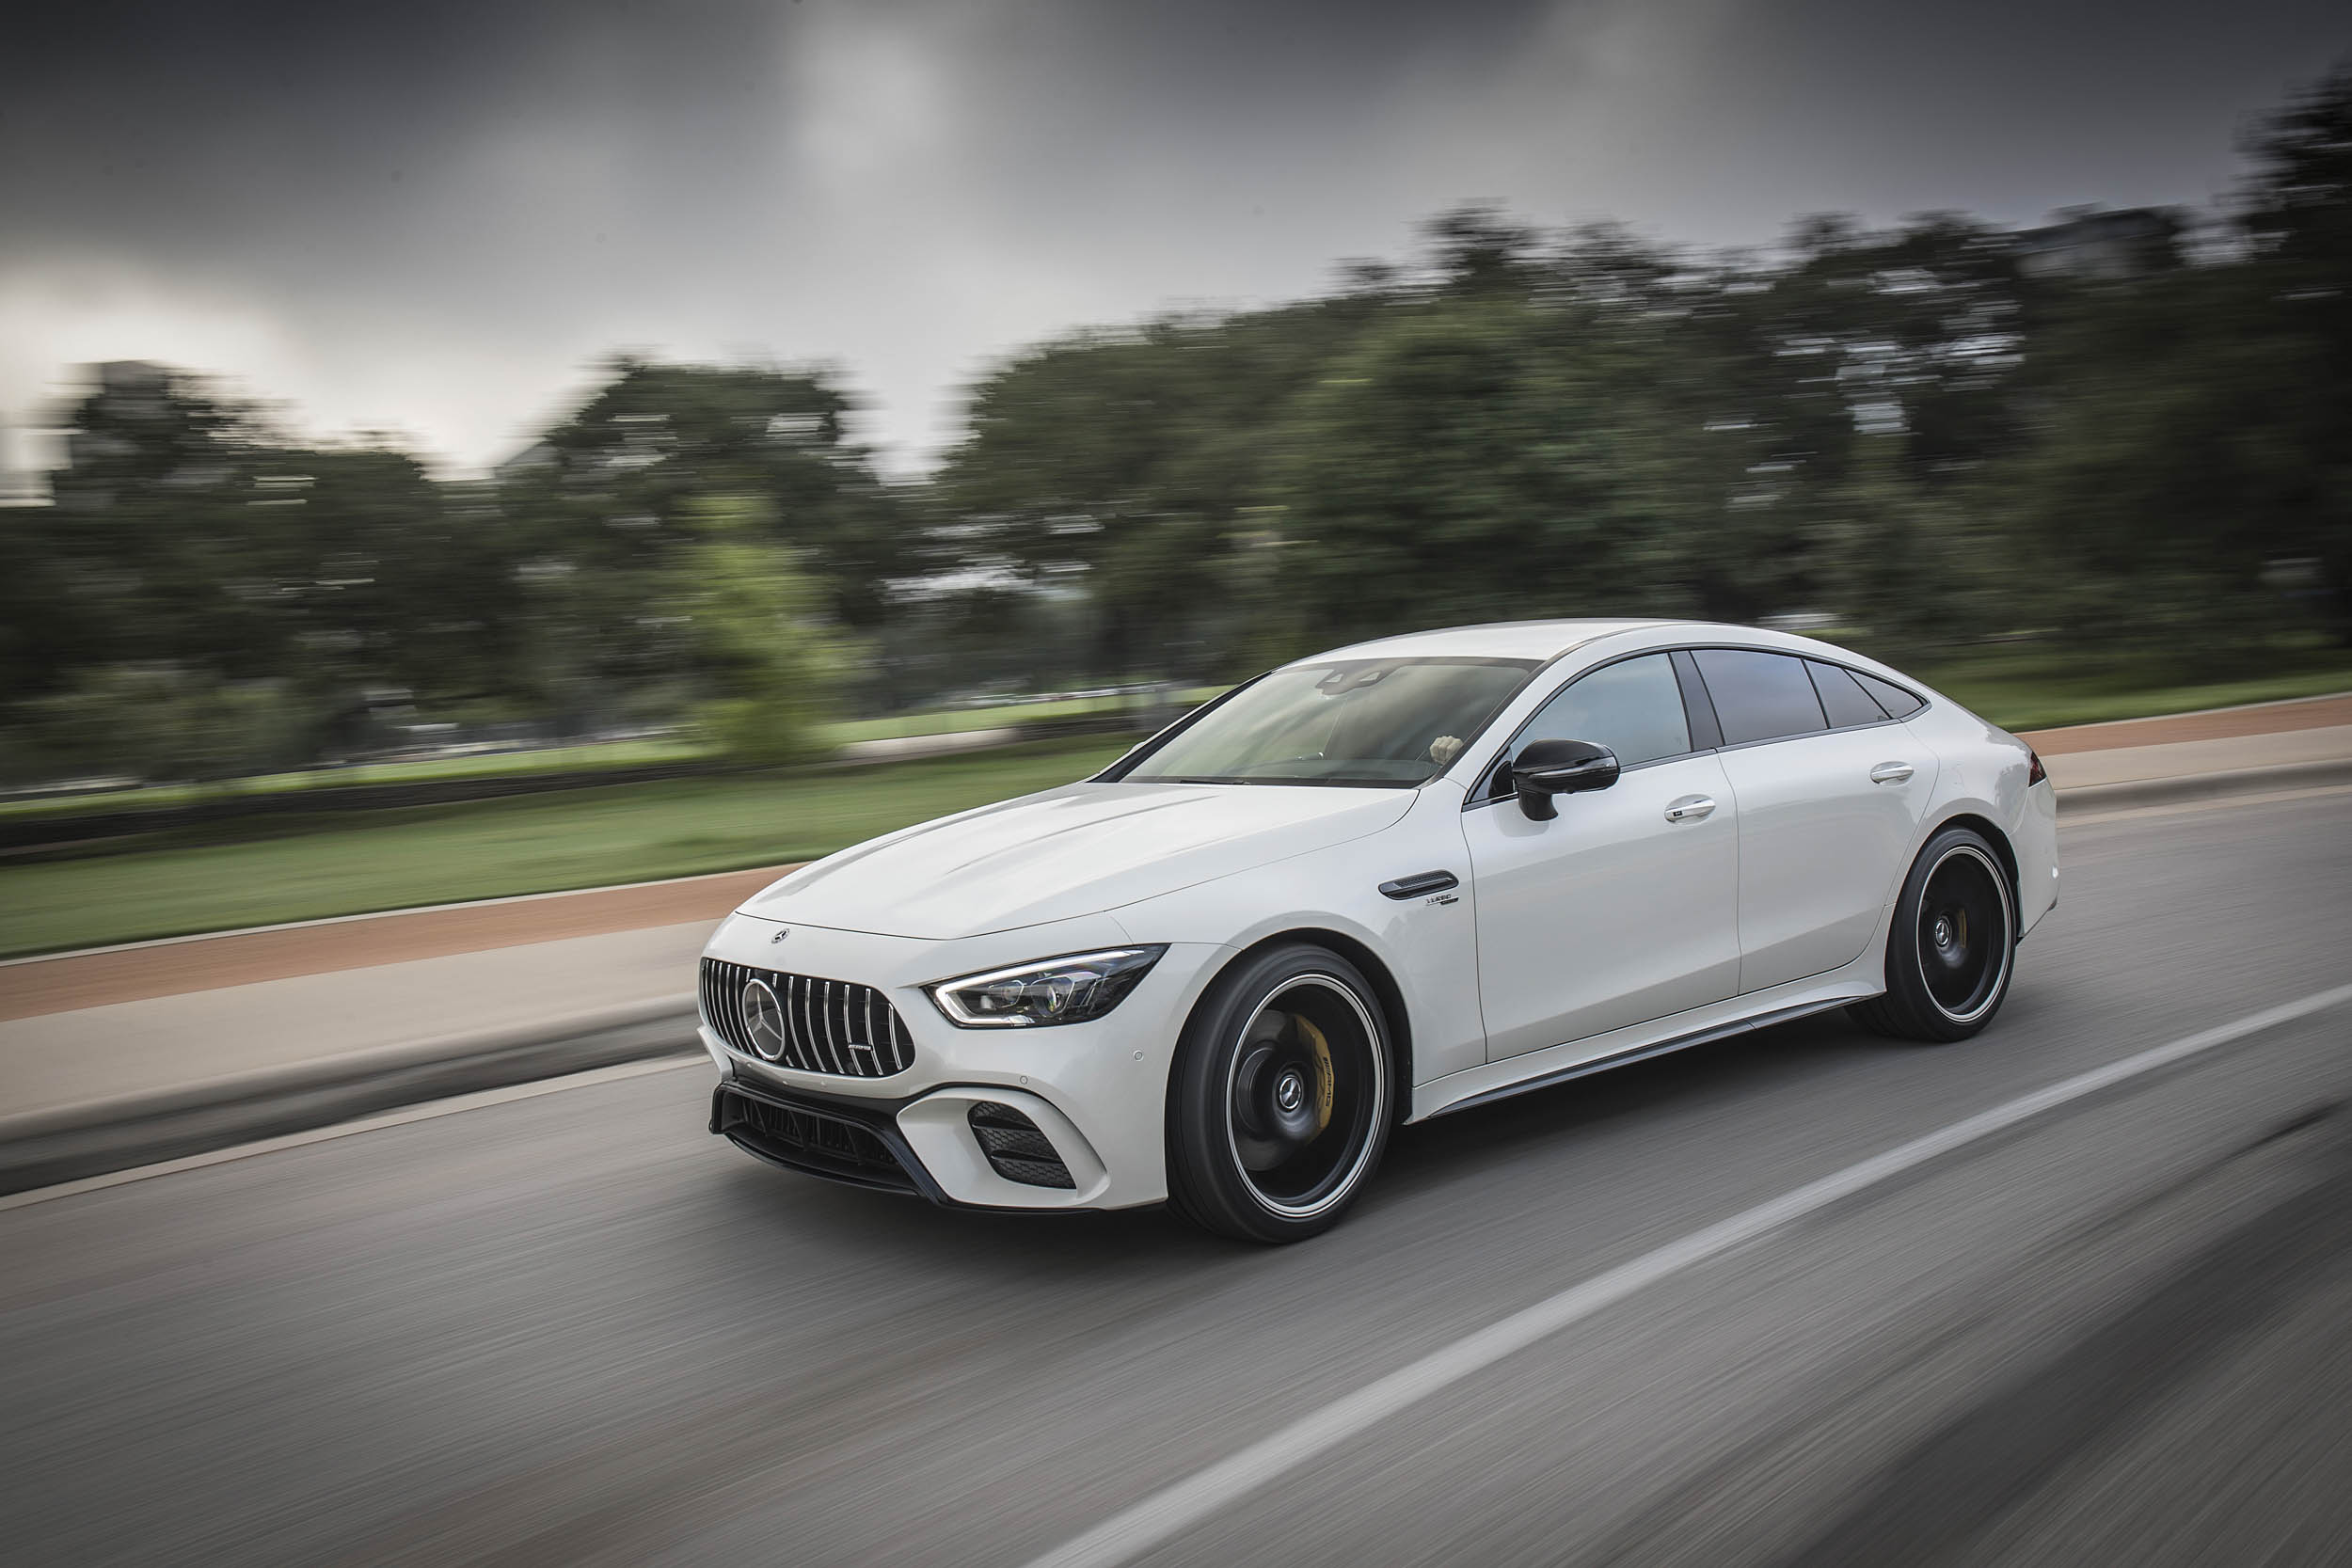 Mercedes-AMG GT 53 driving